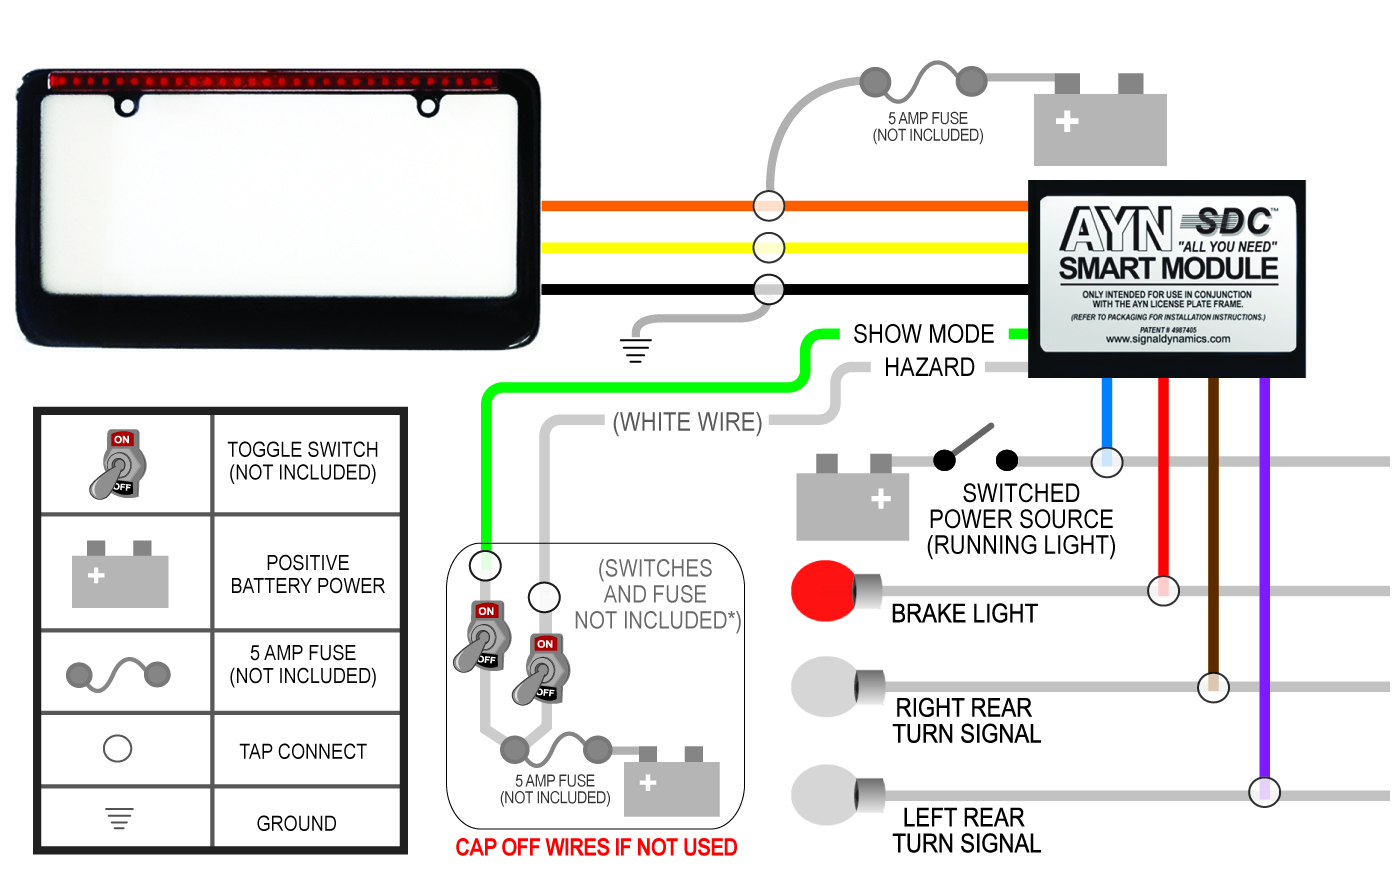 black auto wiring diagram?t=1399476781 black ayn automotive license plate frame & smart module combo Basic Turn Signal Wiring Diagram at n-0.co